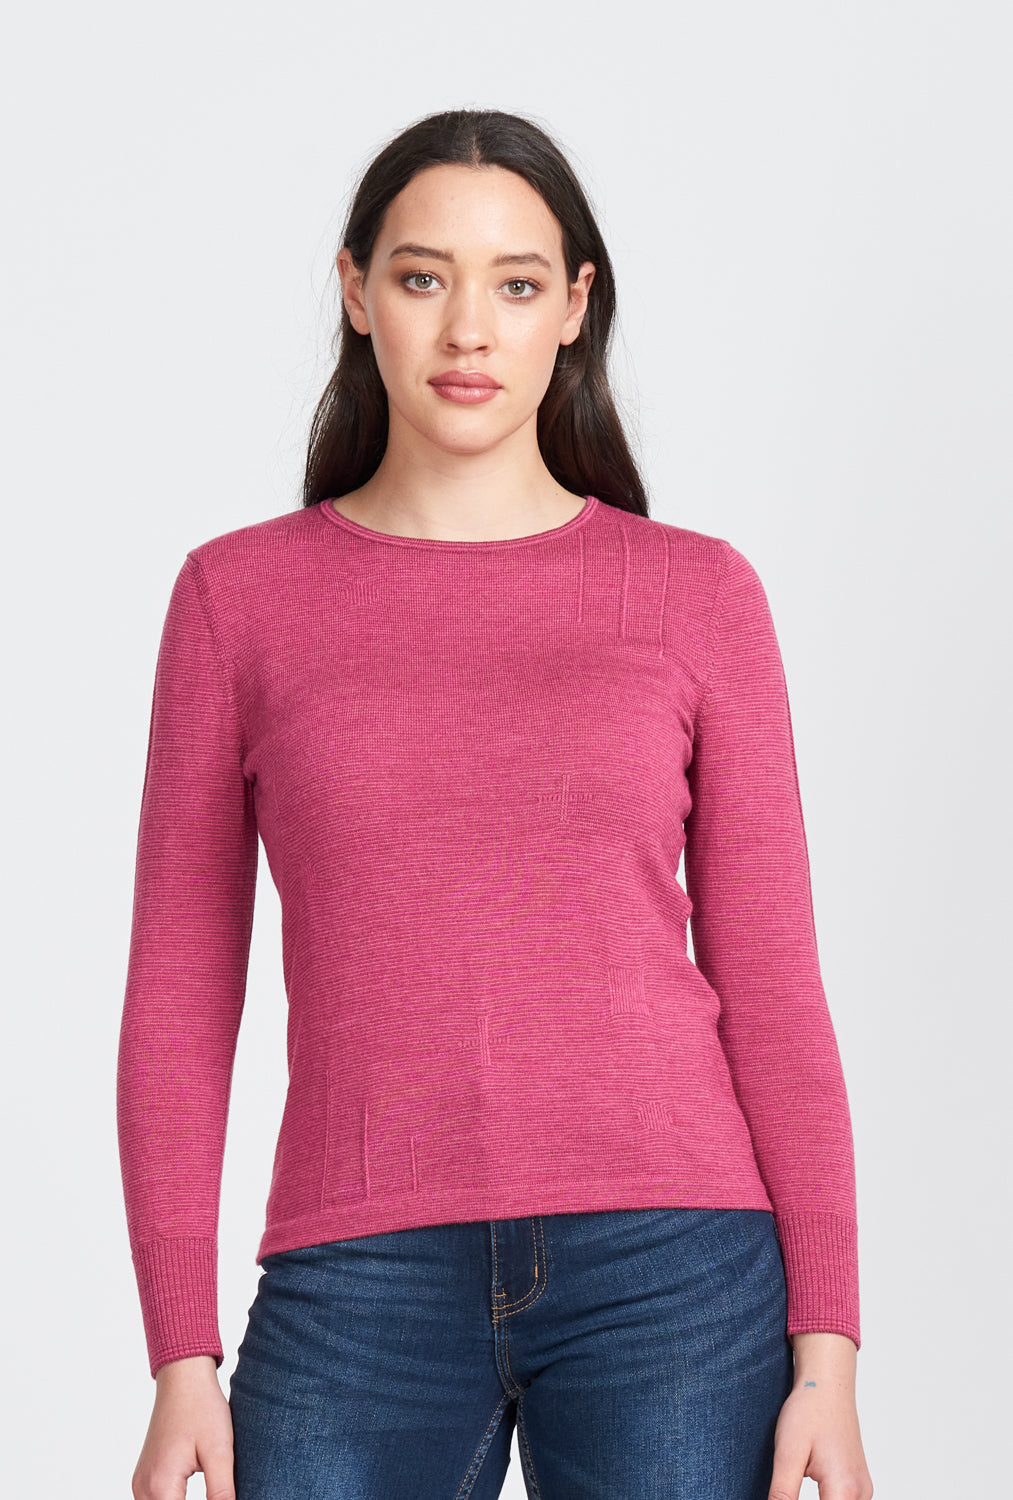 Ladies fine striped, long sleeved, crew neck jumper in 100% superfine merino wool. Fine detailing on shoulder and hip